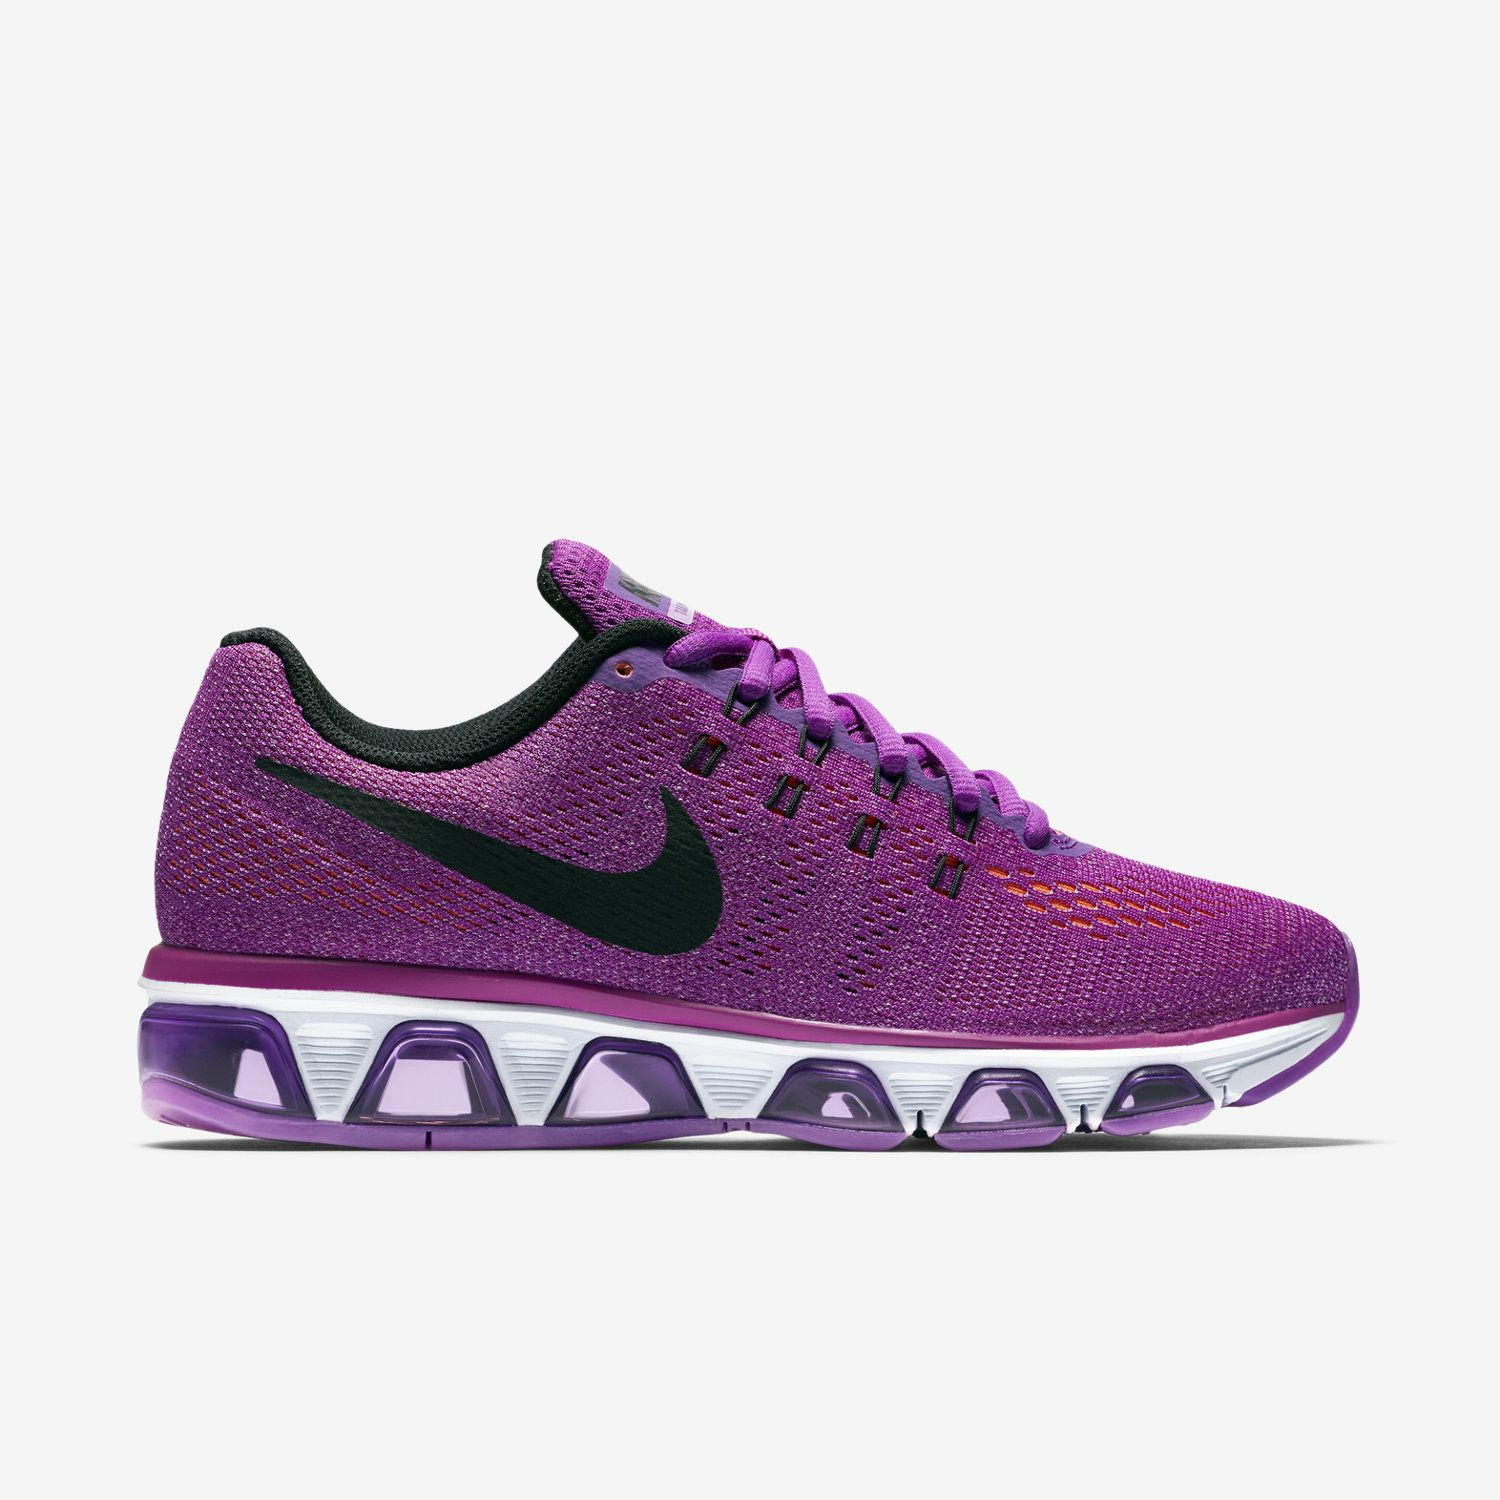 Women's Running Shoe Nike Air Max 2016 Print 818101-006